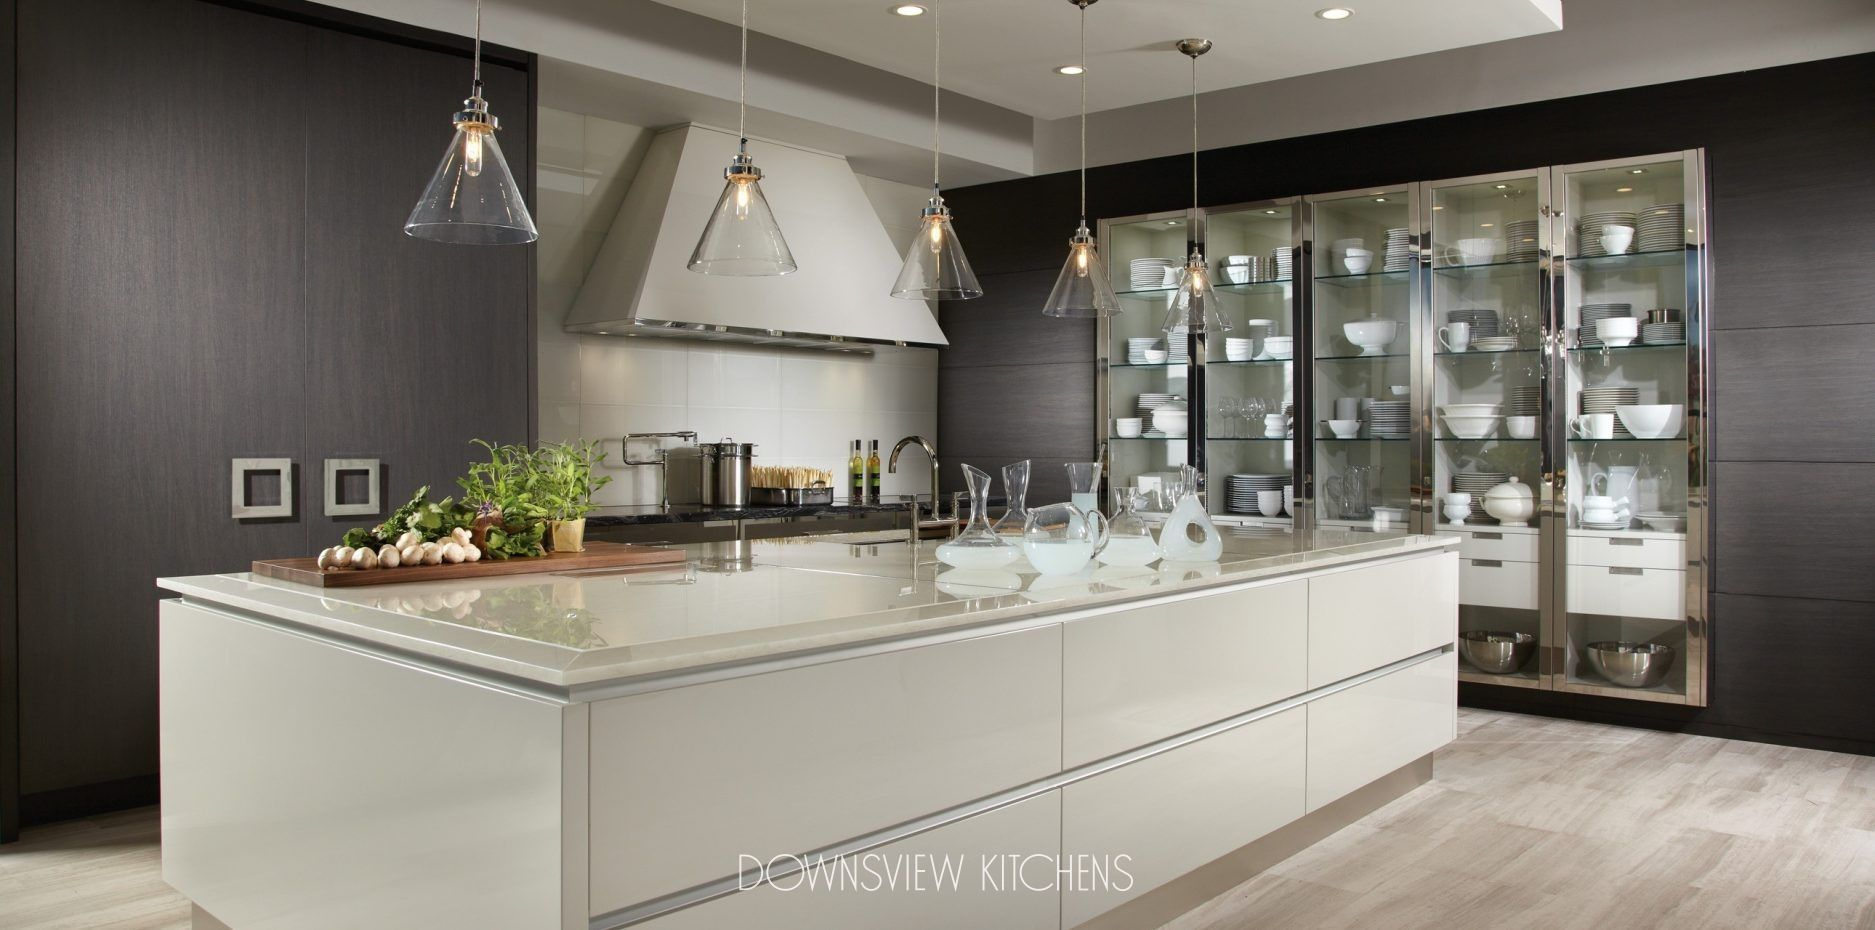 custom modern kitchen cabinets. MODERN REFLECTIONS - Downsview Kitchens And Fine Custom Cabinetry |  Manufacturers Of Kitchen Cabinets Custom Modern Kitchen Cabinets U